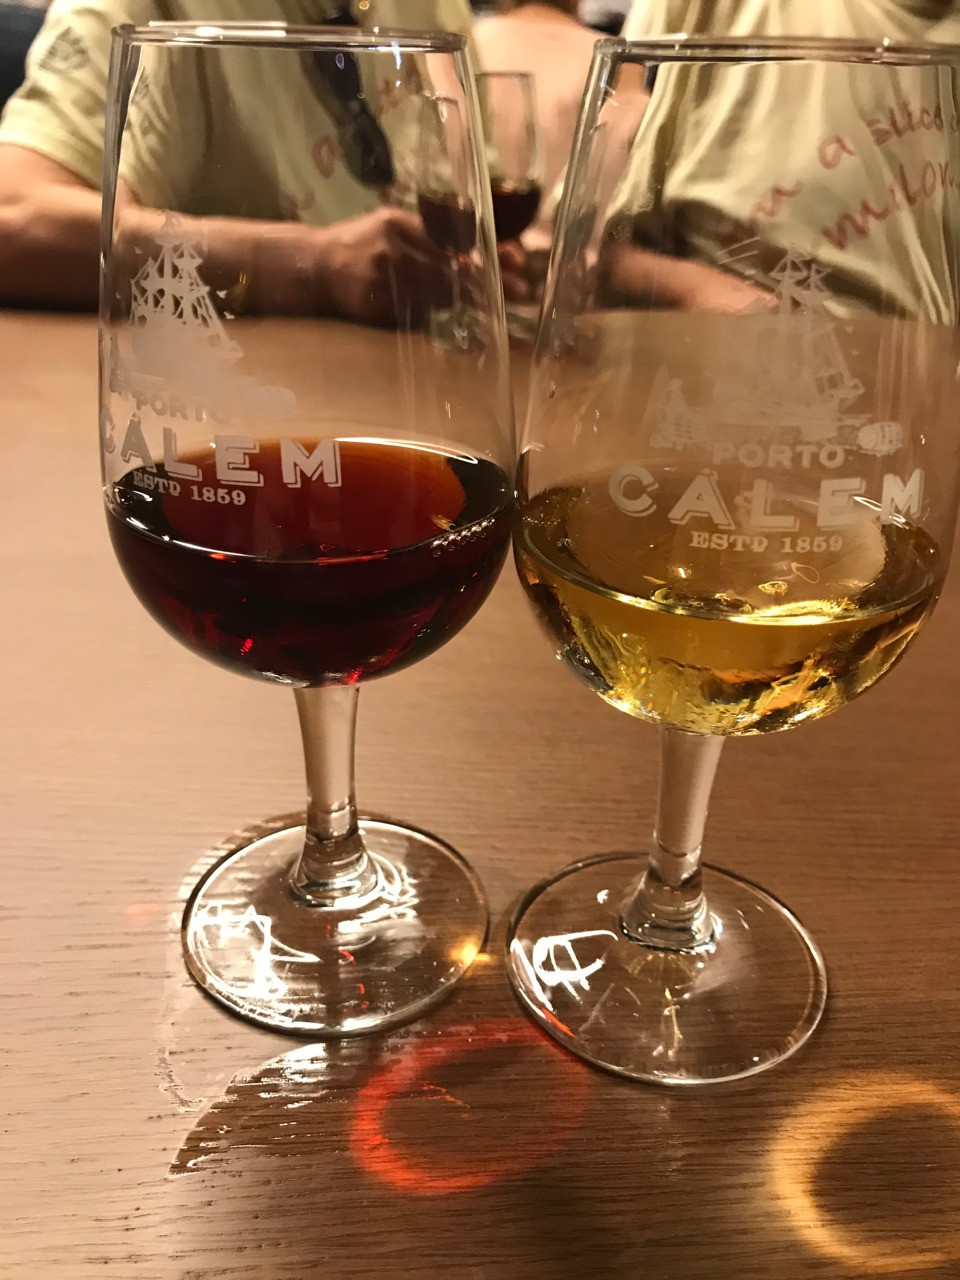 Tawny and White Port tasting in Porto.